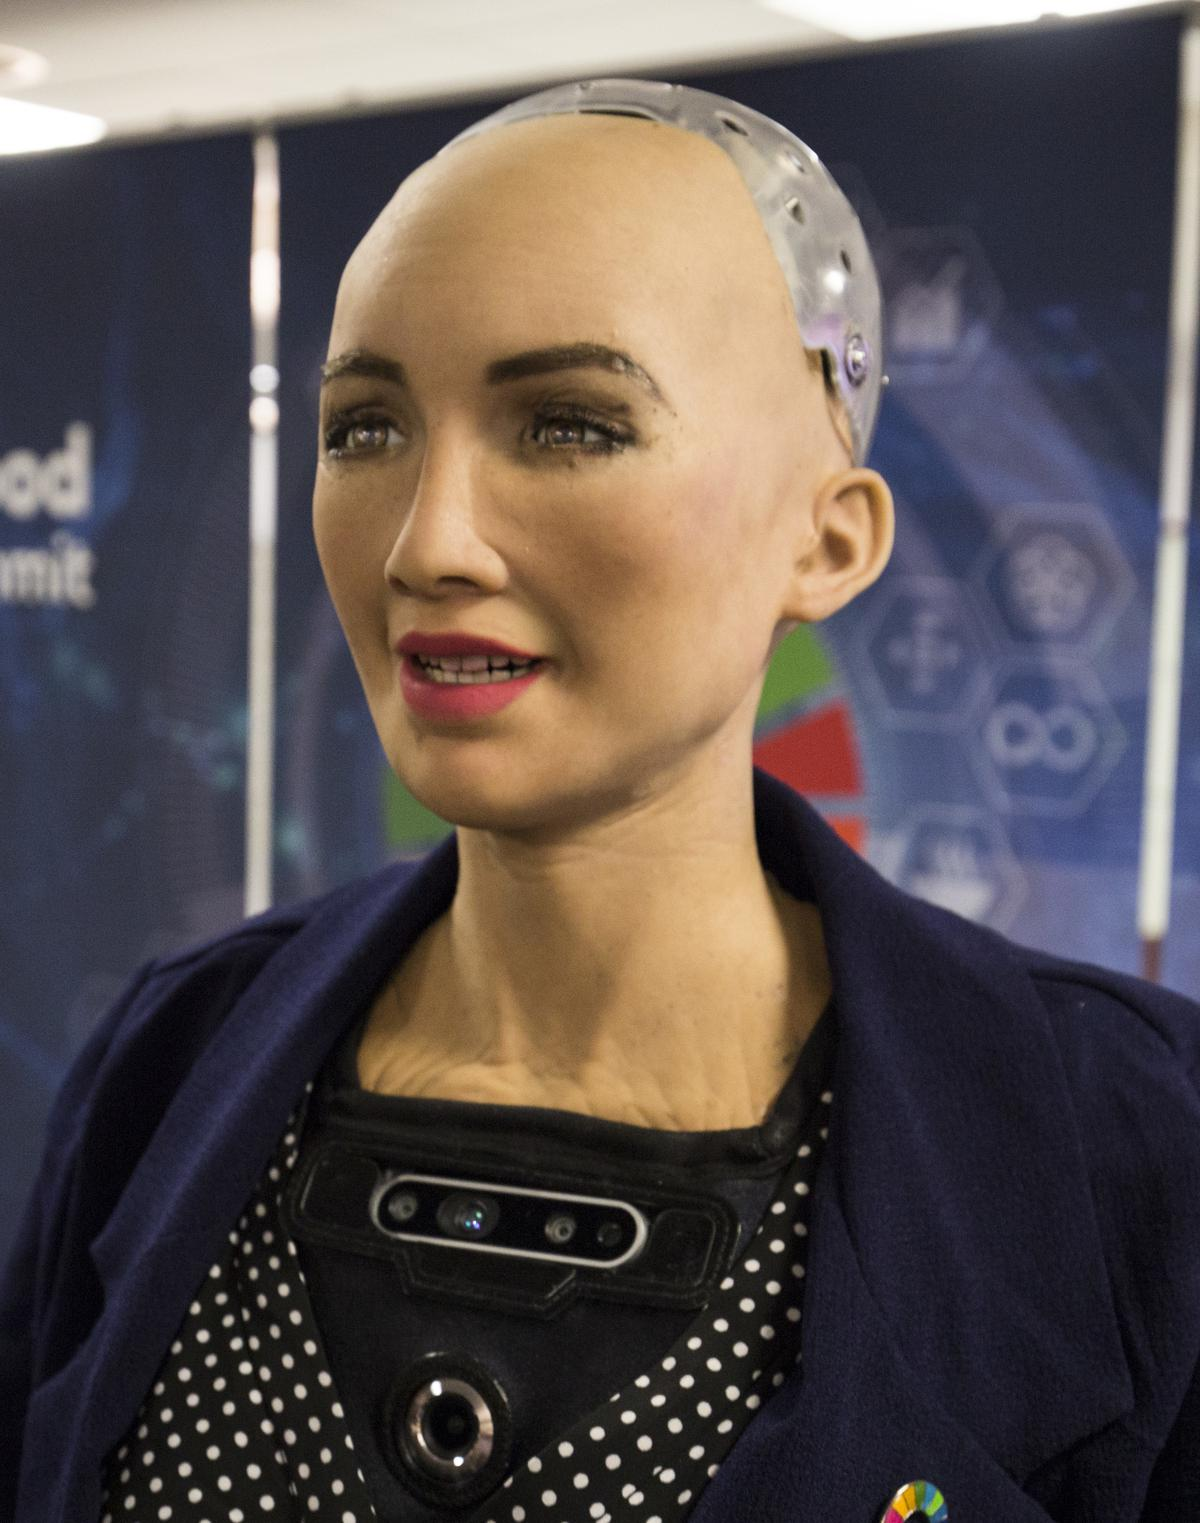 https://360tv.ru/media/uploads/article_images/2019/02/29256_Sophia_at_the_AI_for_Good_Global_Summit_2018_27254369347_cropped.jpg